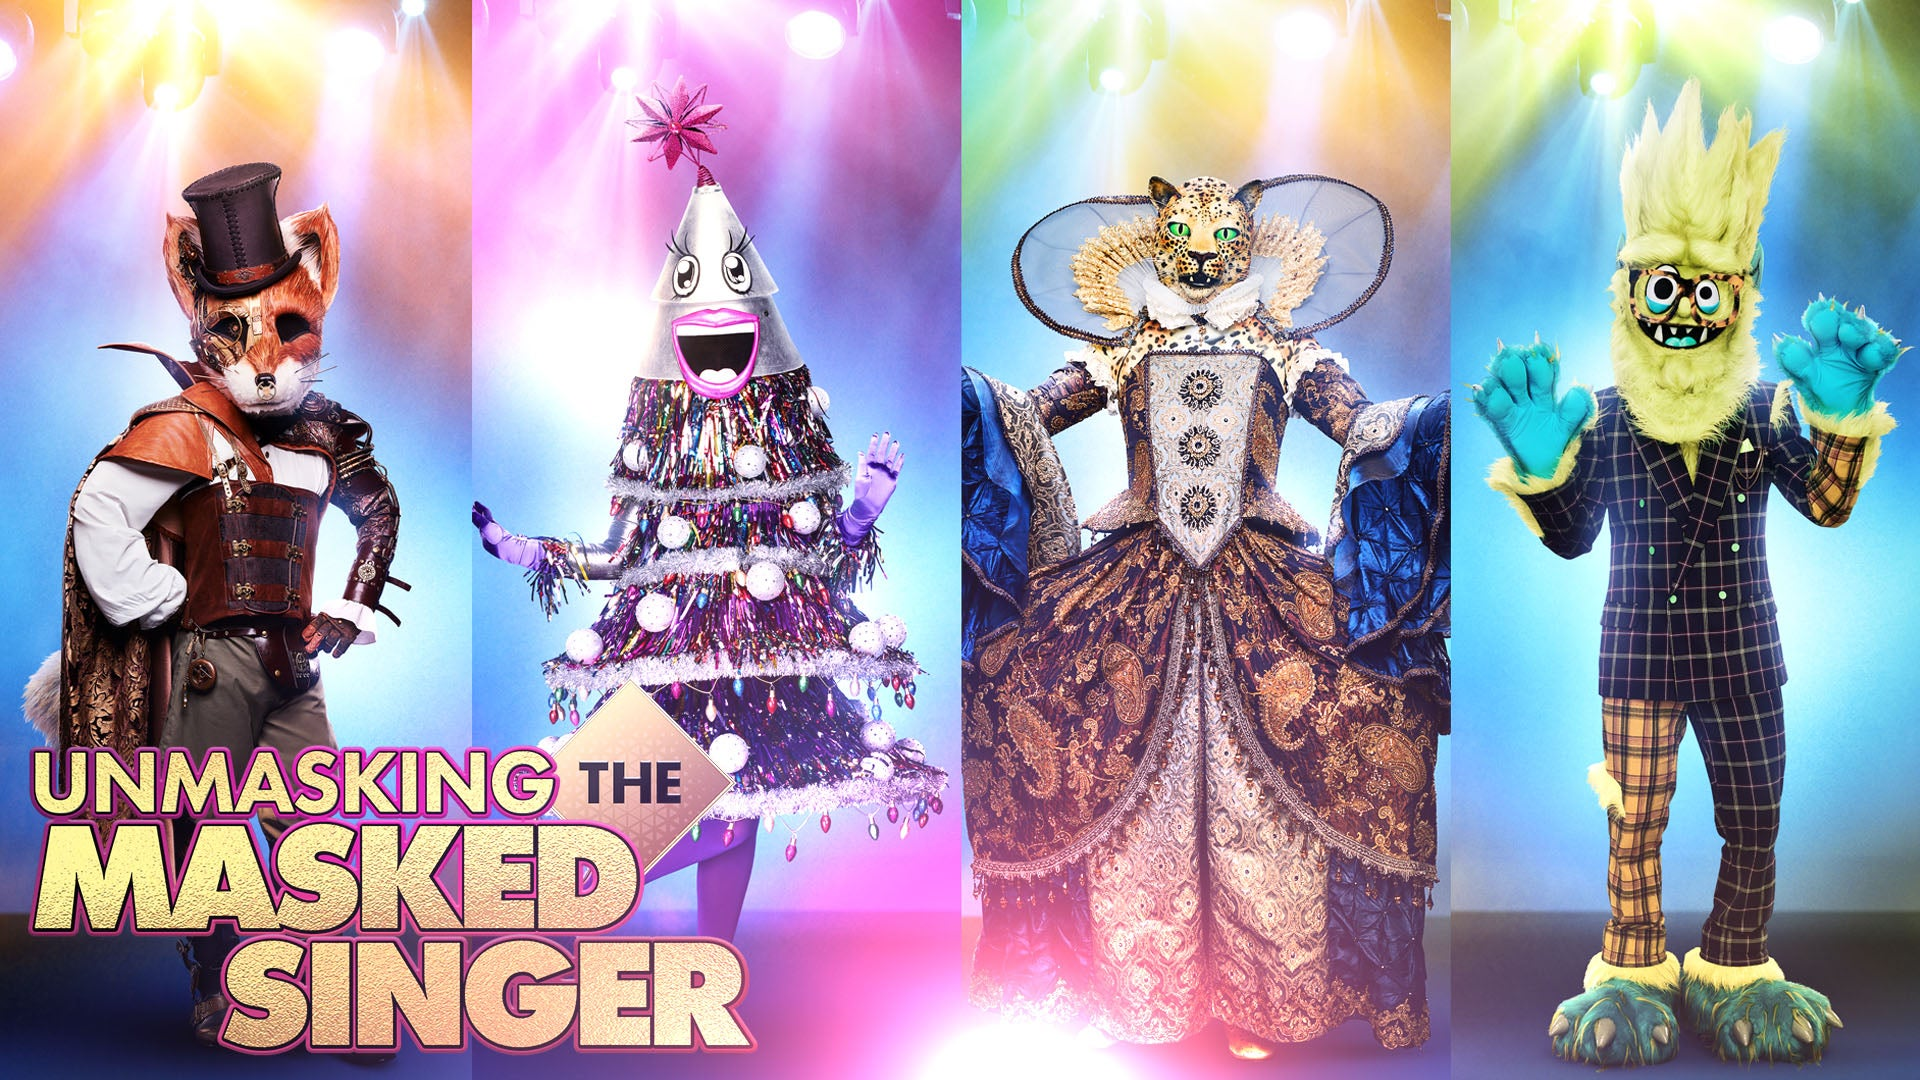 'The Masked Singer' Season 2: Clues, Spoilers & Our Best Guesses